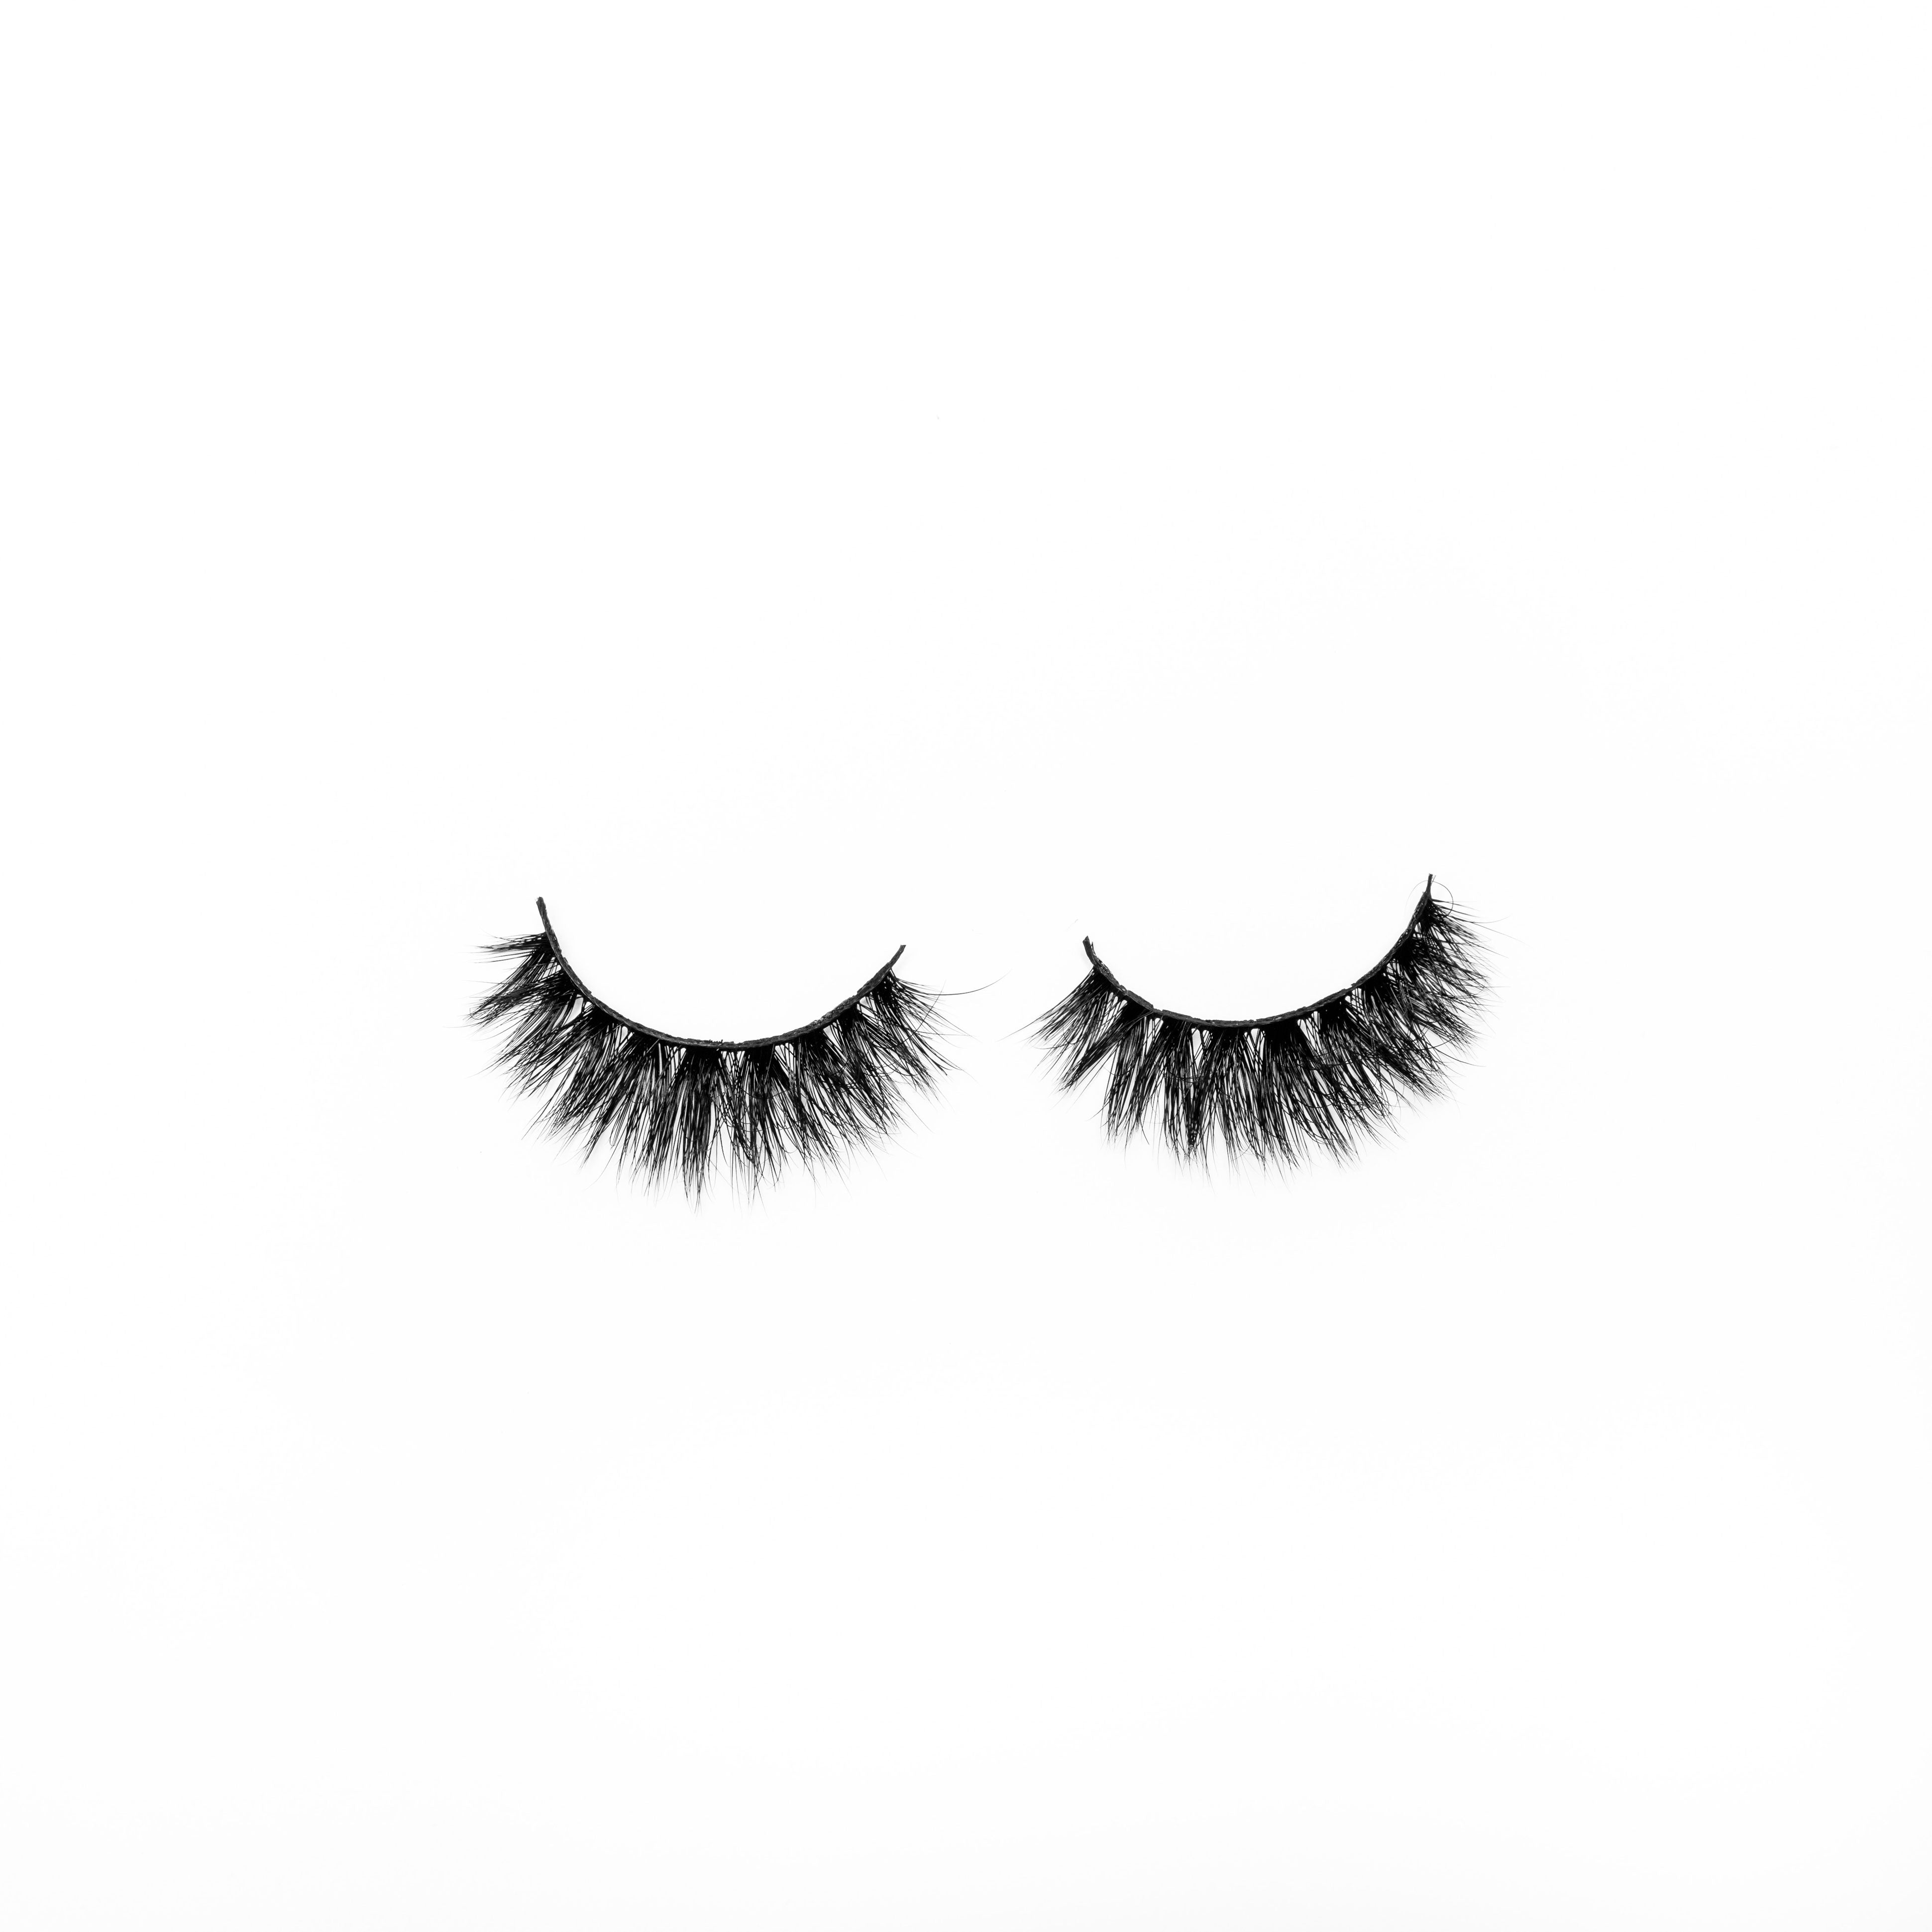 ALL EYES ON YOU | set of 4 Mink Lashes